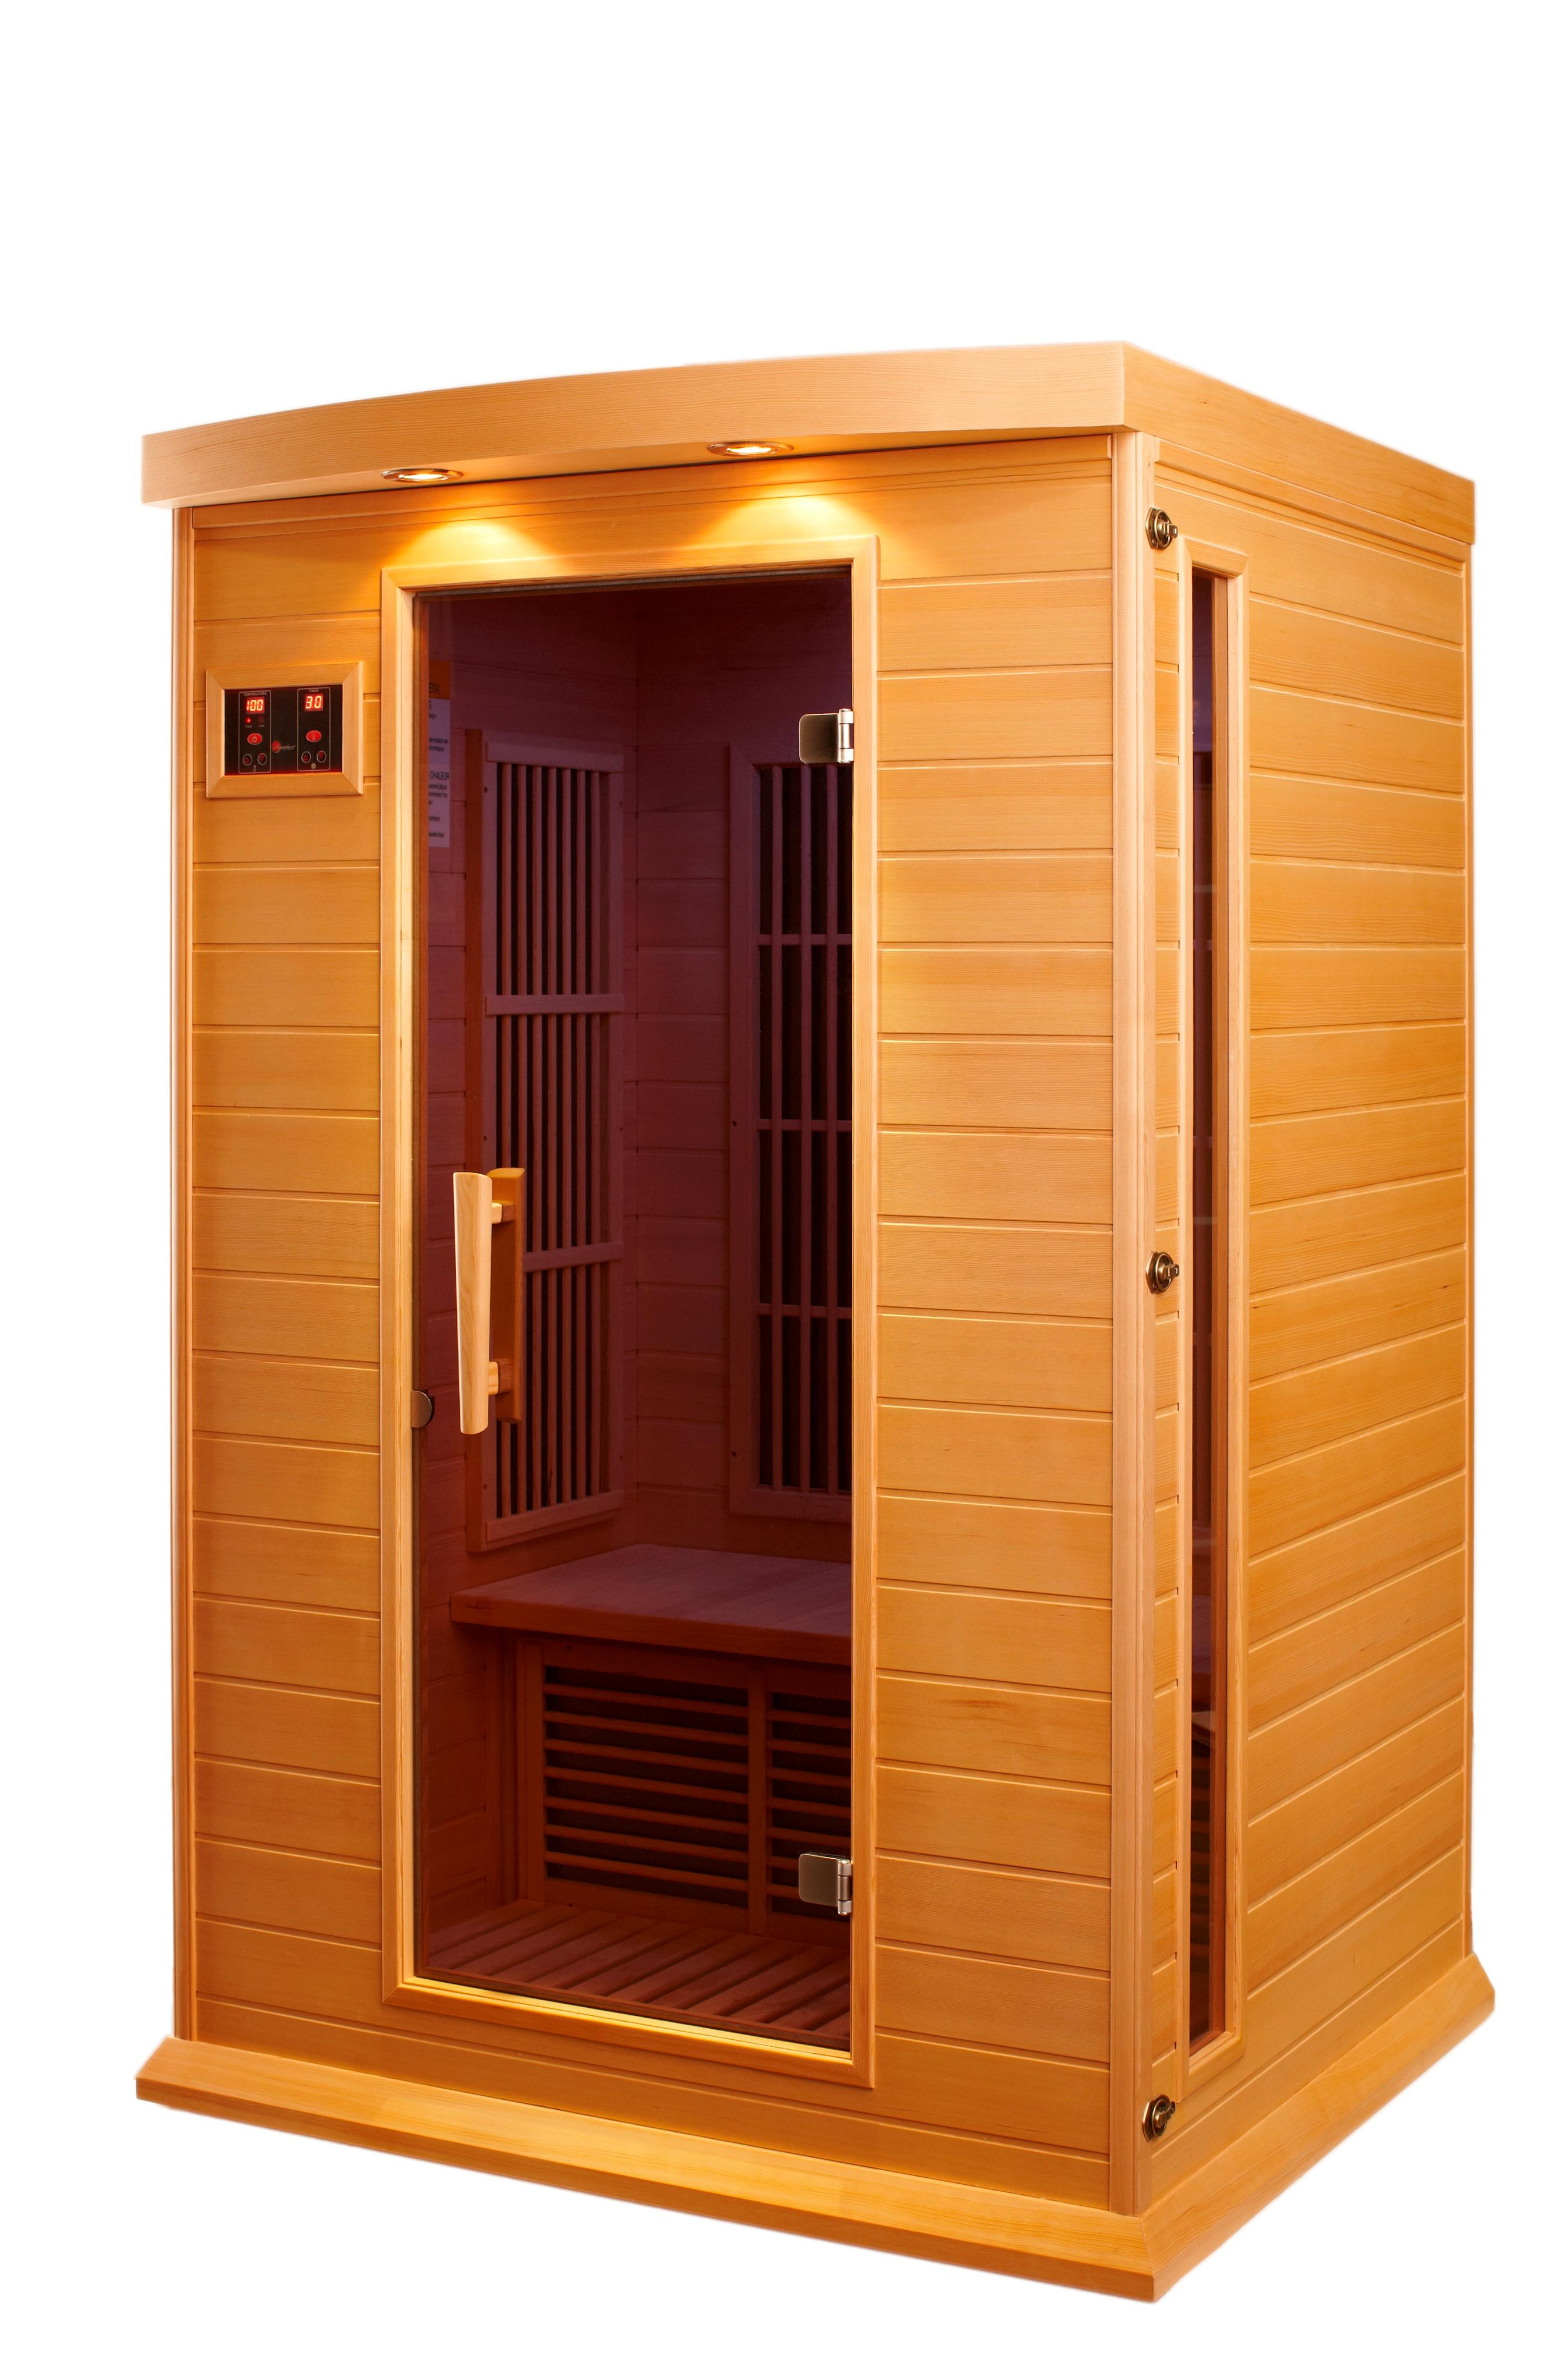 Infrared Sauna With Salt Wall In Nh Hotel Zandvoort The: Amazon.com : DYNAMIC SAUNAS AMZ-MX-K206-01 Maxxus Toulouse